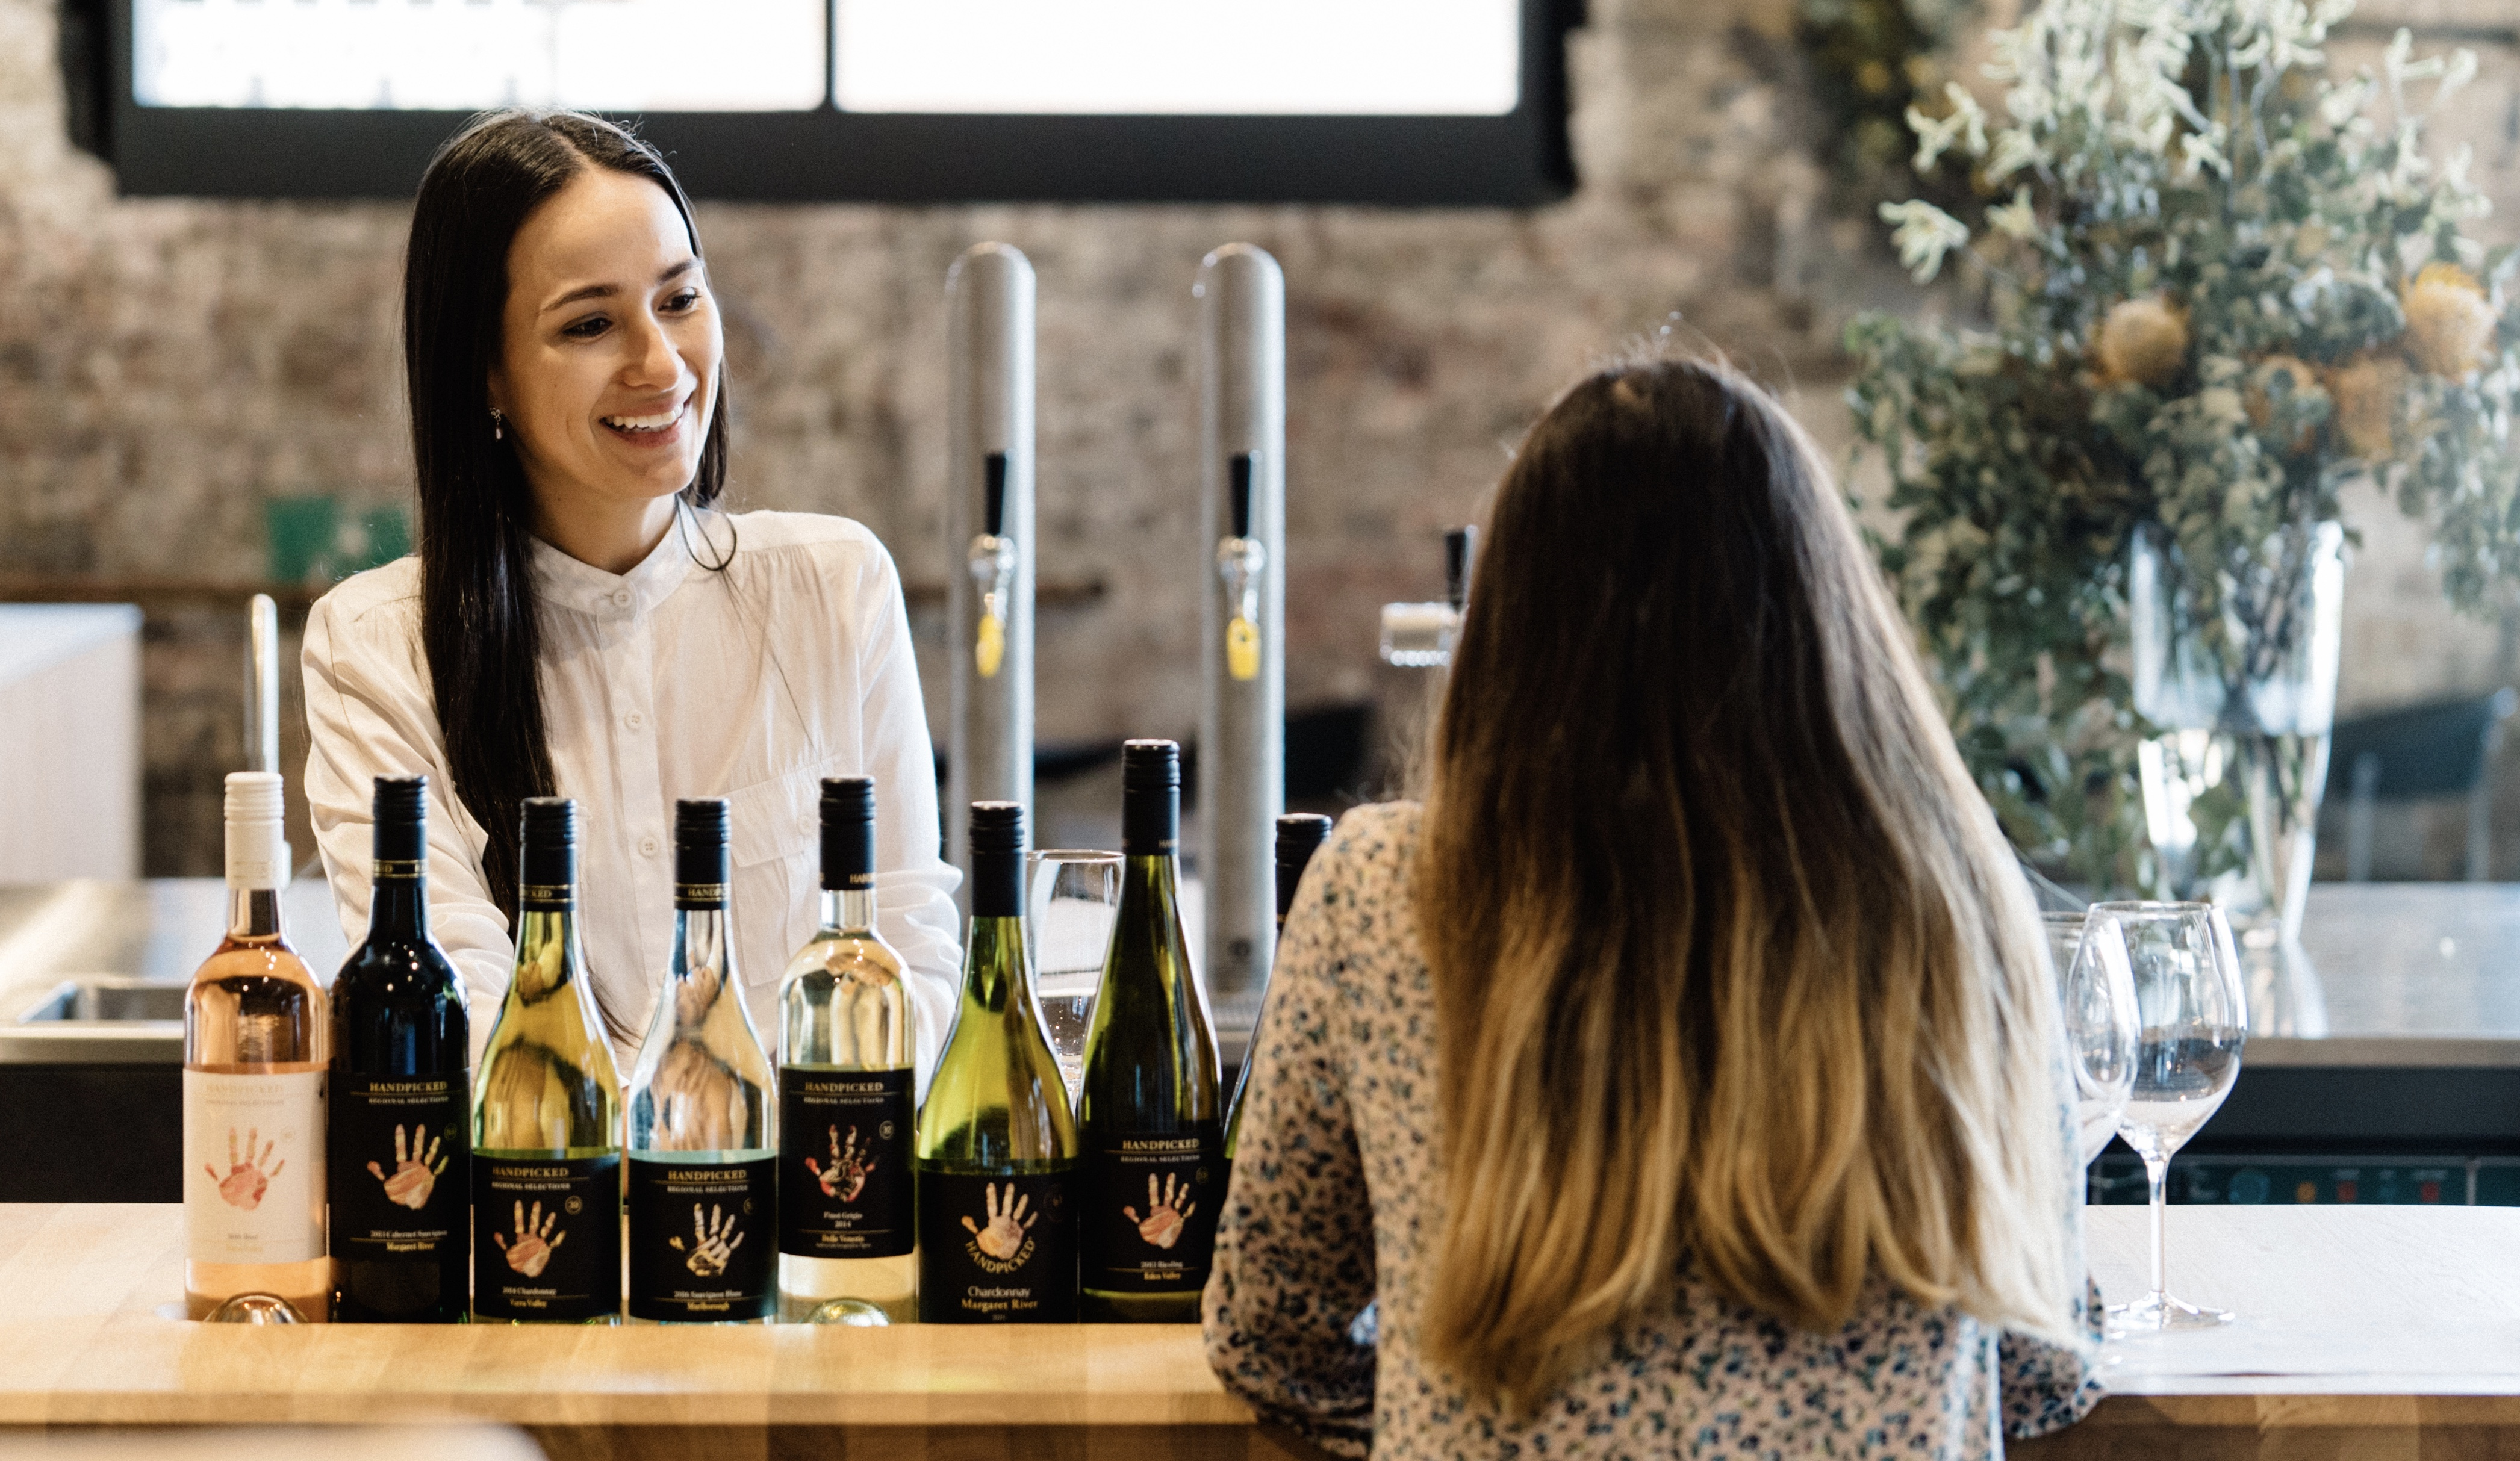 The 2018 Wine Trends & Predictions: An Uncorked Exploration